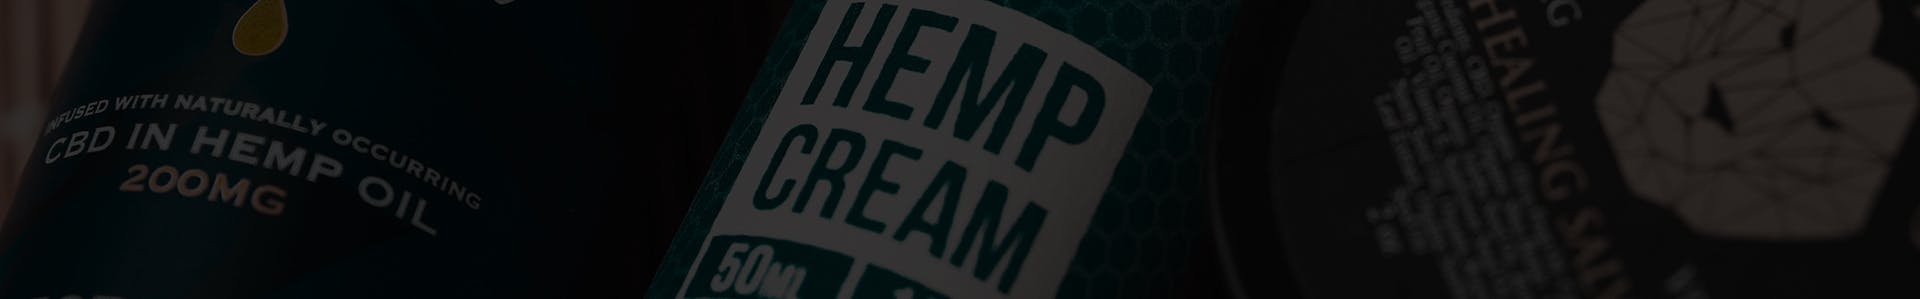 7 Best CBD Creams and Topicals for Natural Pain Relief 2019 [Aug]